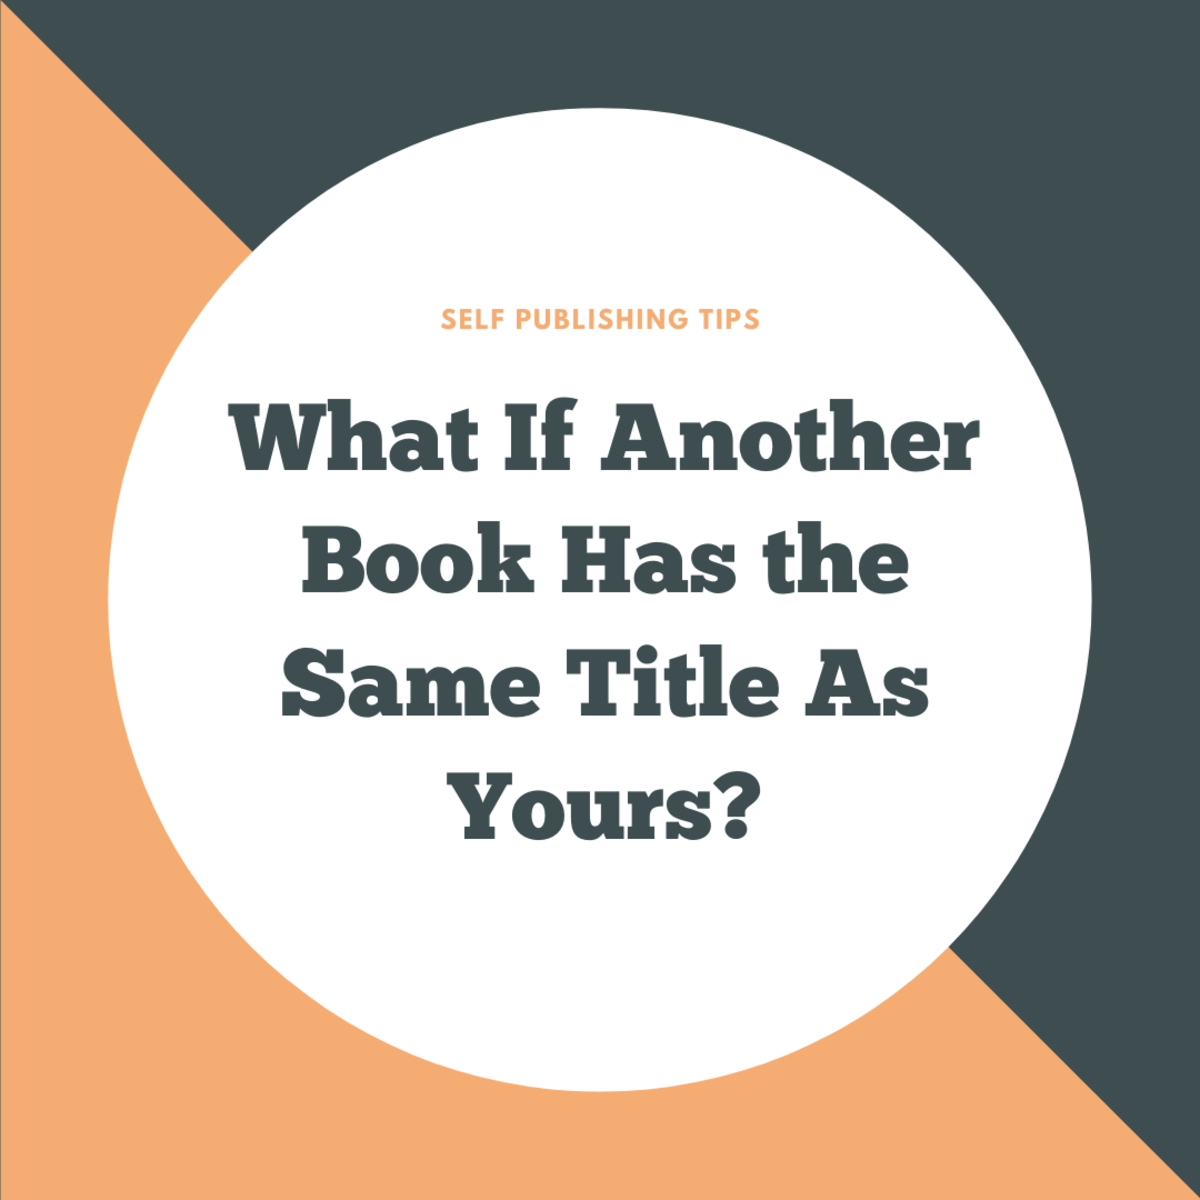 If another book has the same or similar title to yours, should you be concerned?